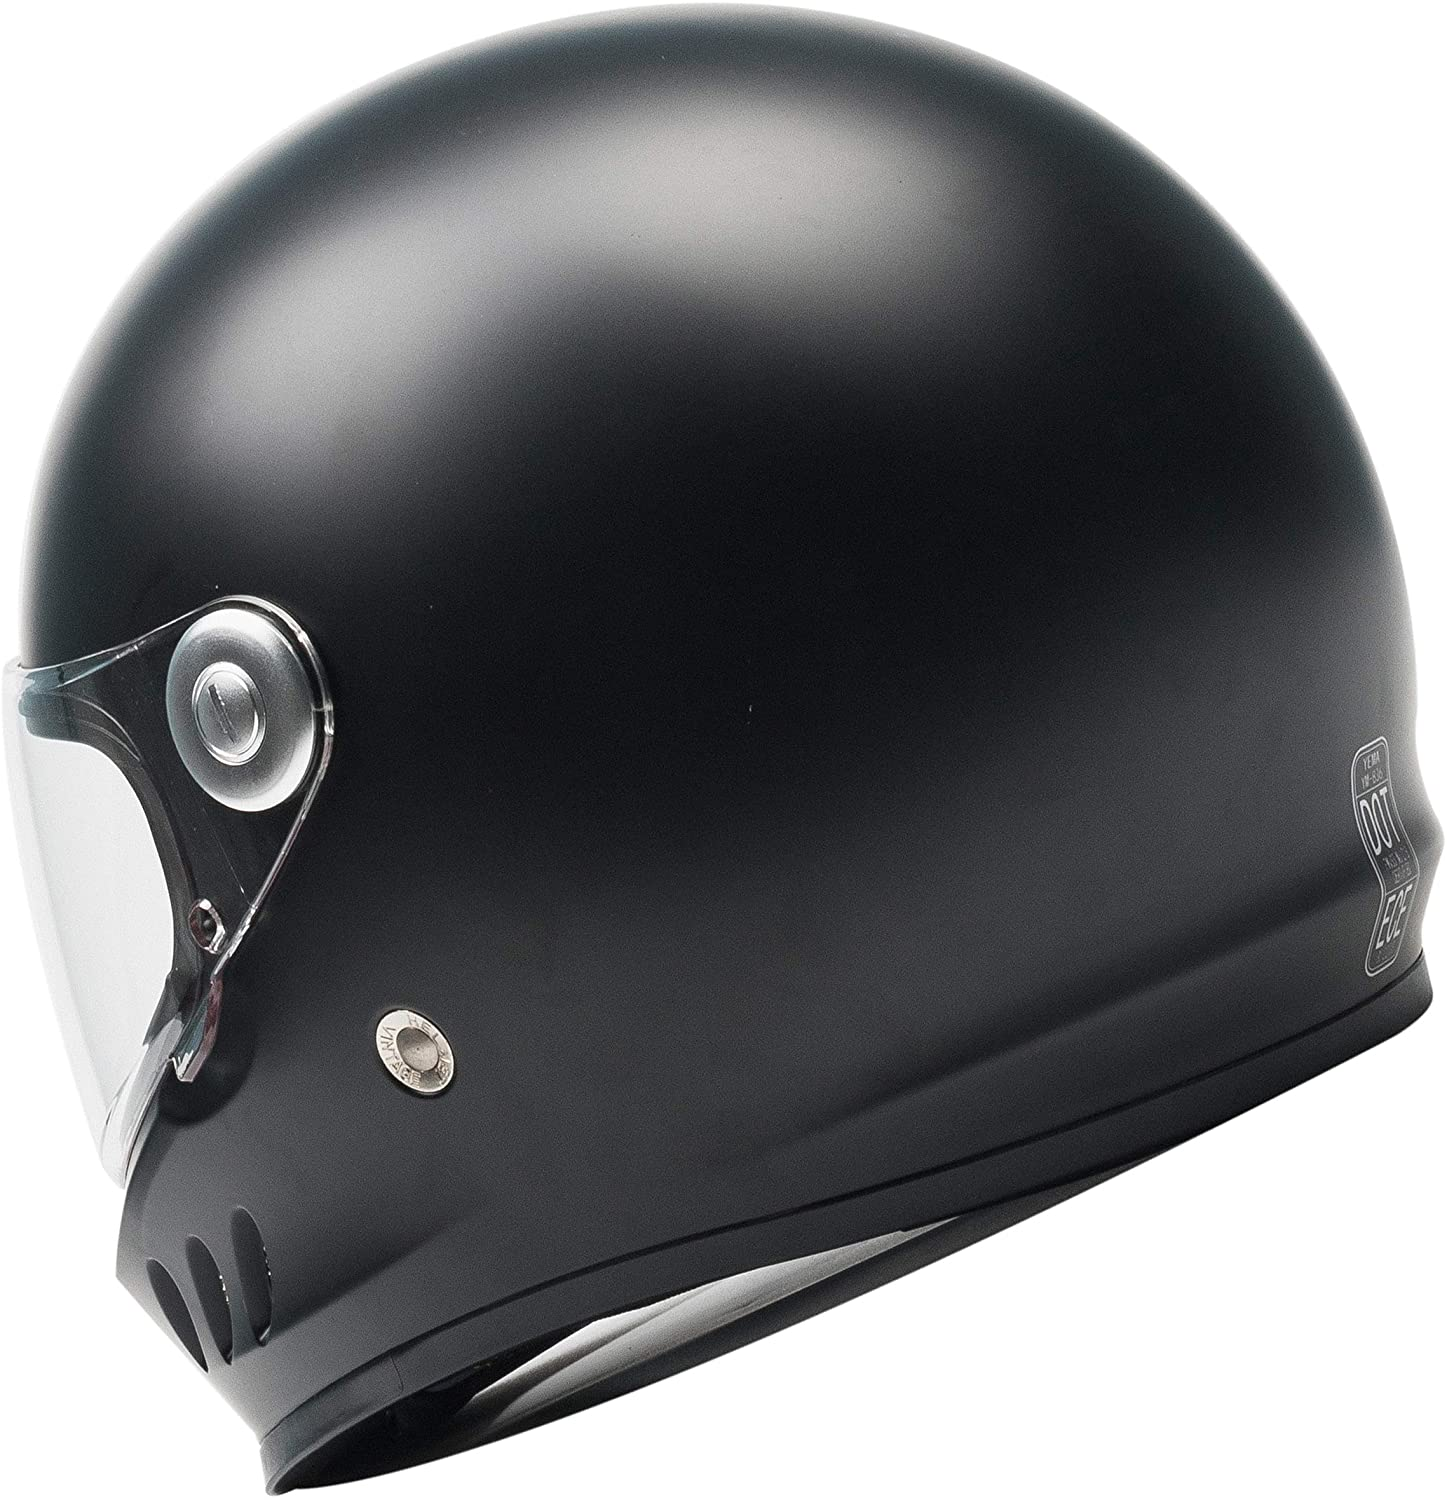 YEMA YM-833 Motorbike Moped Street Bike Racing Crash Helmet with Clear Visor for Adult XL Matte Black Men and Women Motorcycle Full Face Helmet DOT And ECE Approved